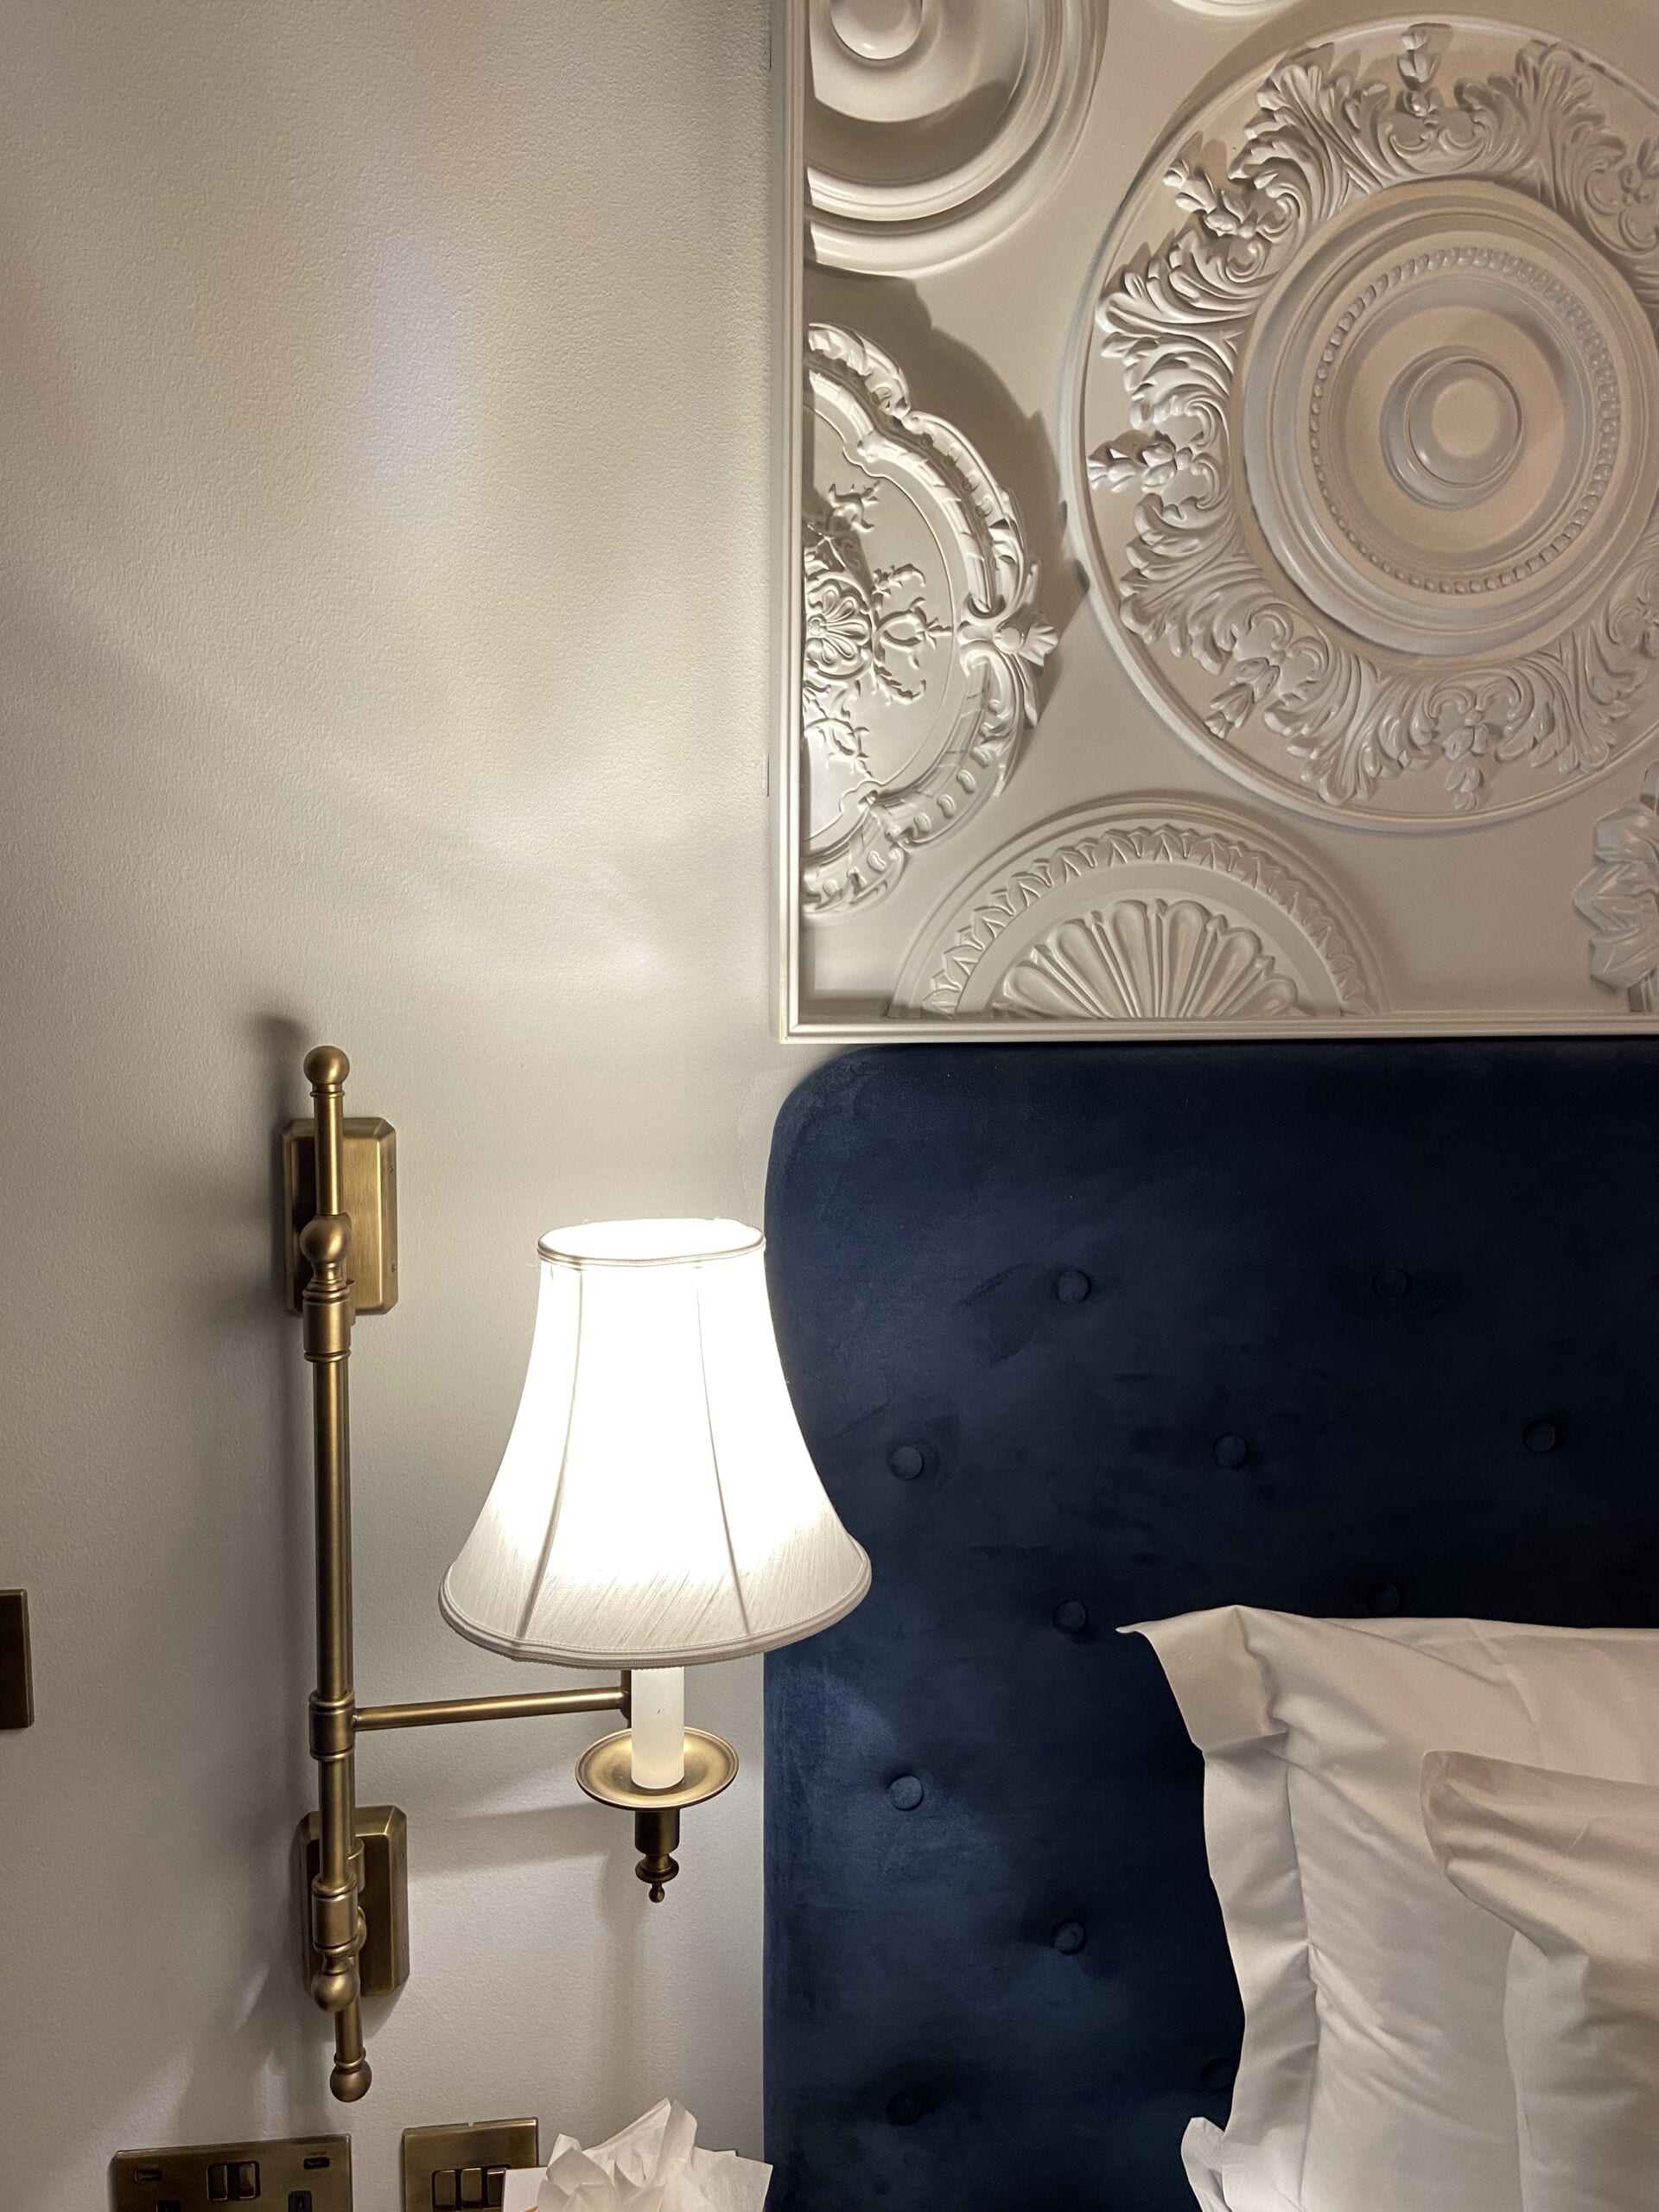 Hotel Bedside Table and Lamp